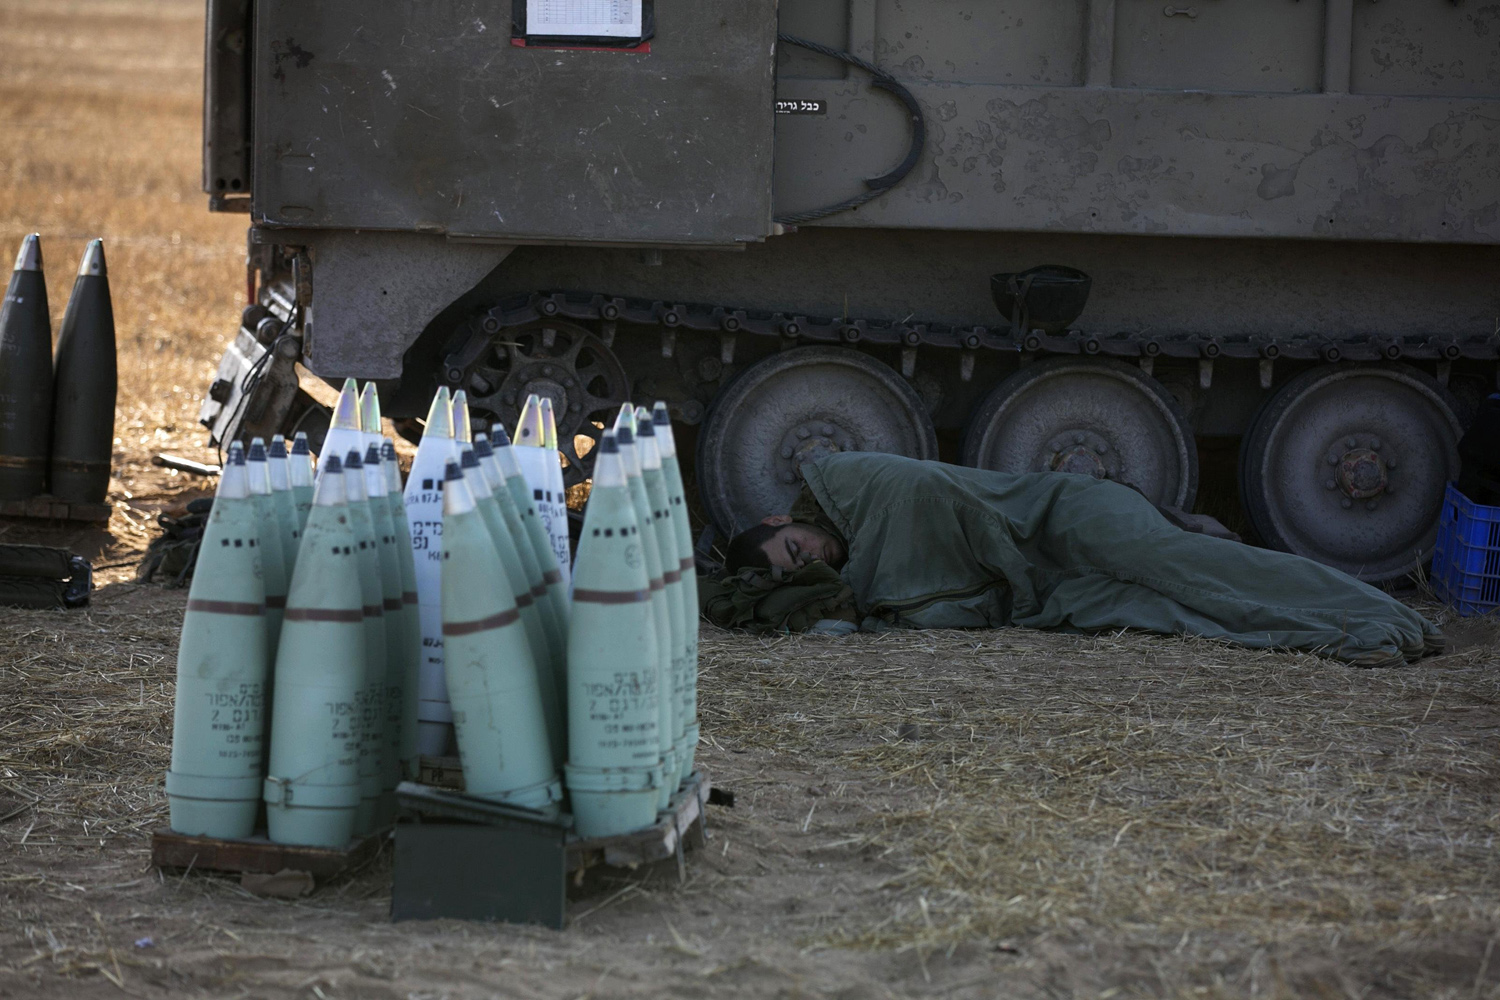 Jul. 10, 2014. An Israeli soldier sleeps next to a mobile artillery unit outside the central Gaza Strip.